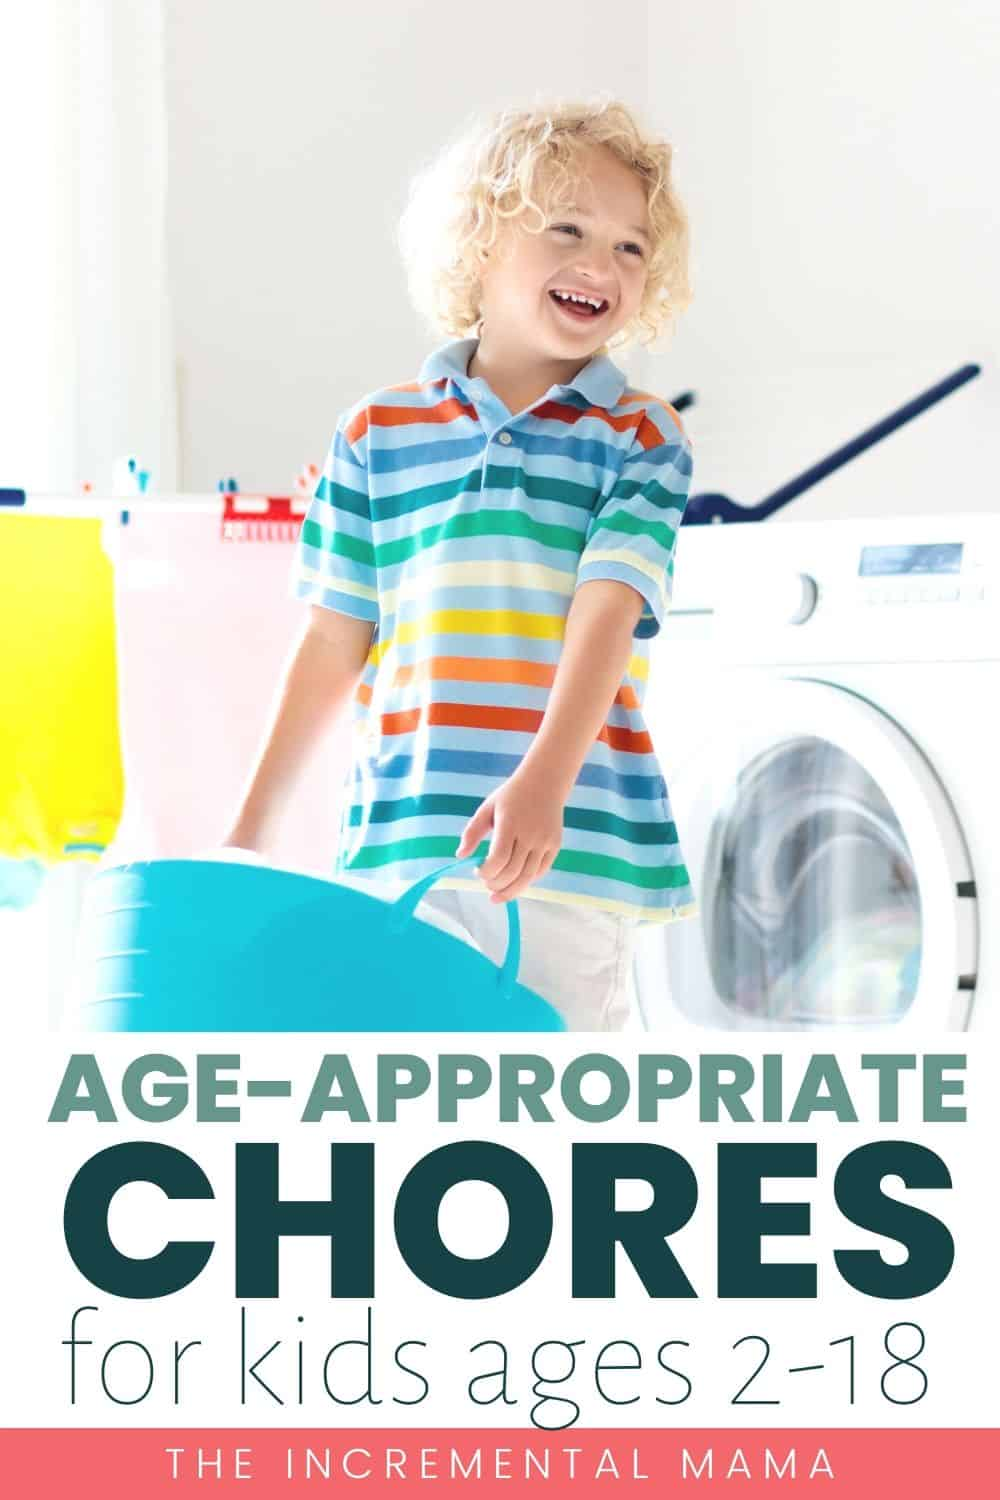 Free printable chore chart by age